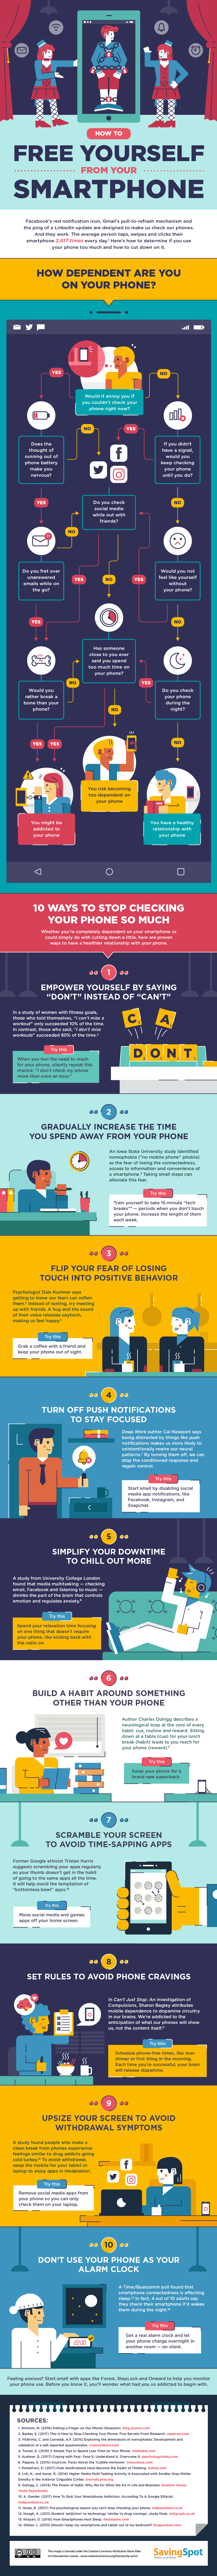 How to free your self from smart phones #Infographic